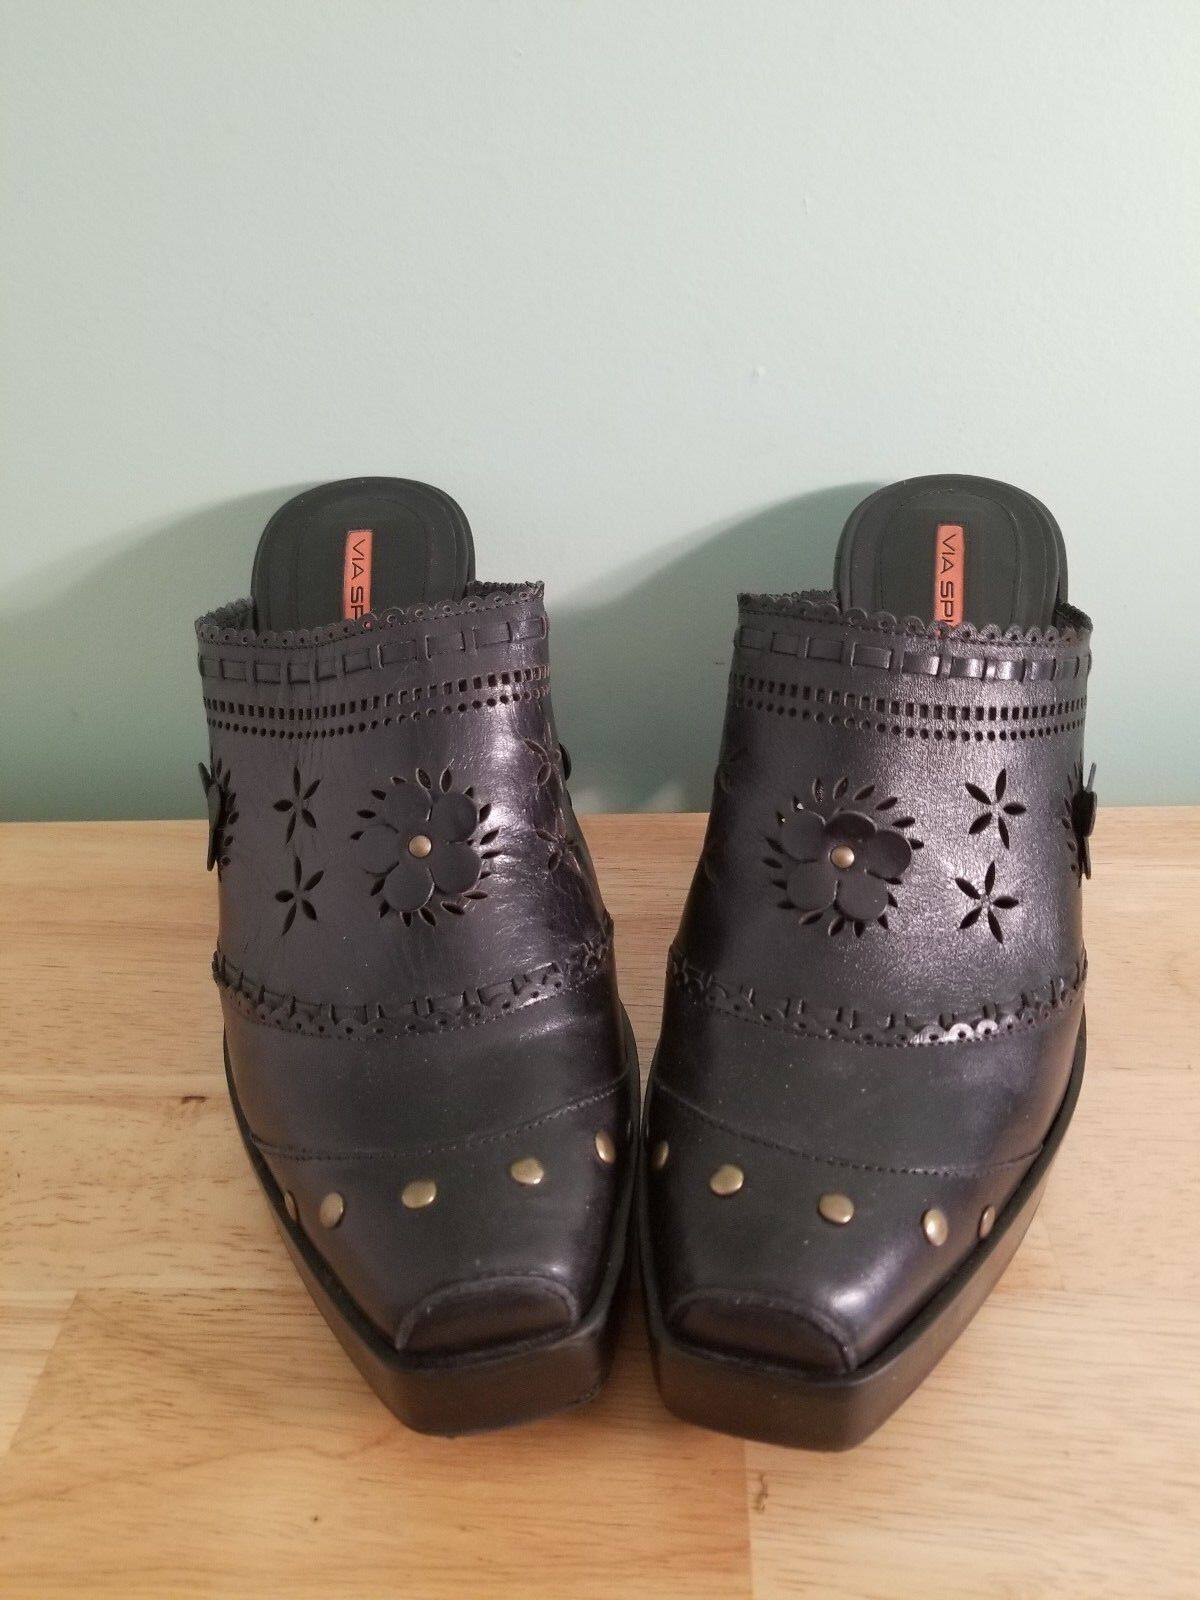 Via Spiga Leather Floral Cutout Studded Clogs nero Dimensione 10